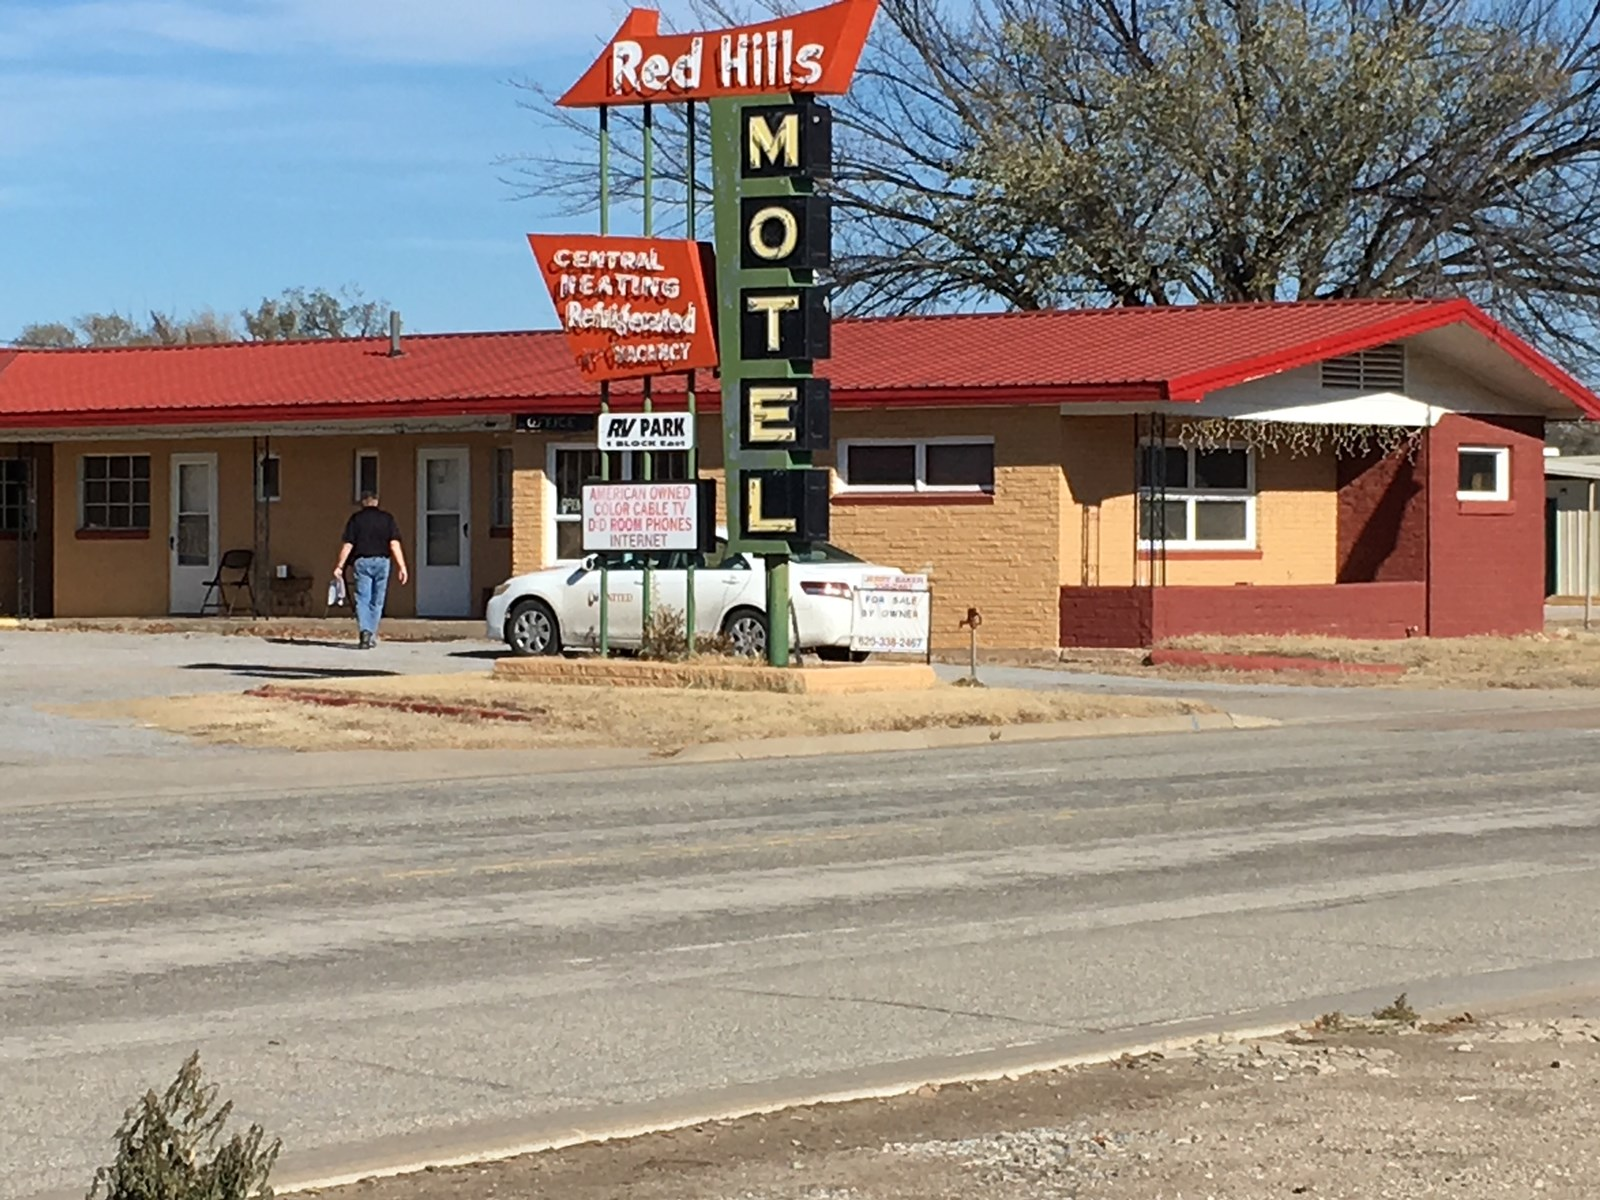 Motel – Lodge For Sale in Ashland, Clark County, Kansas